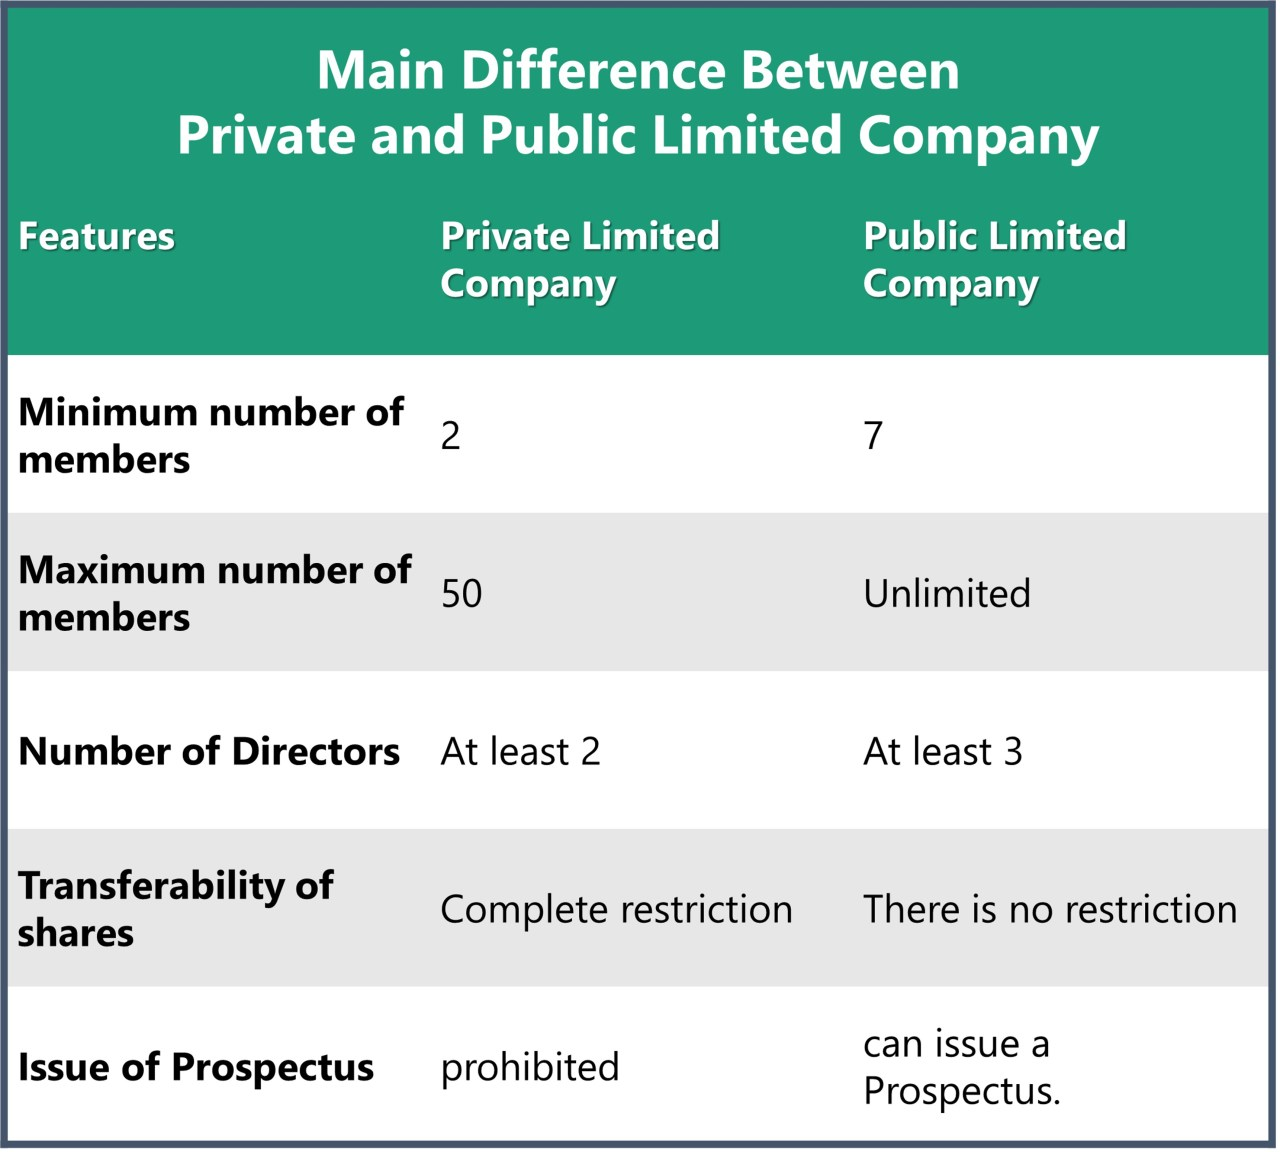 What is the Difference between Private and Public Limited Company?